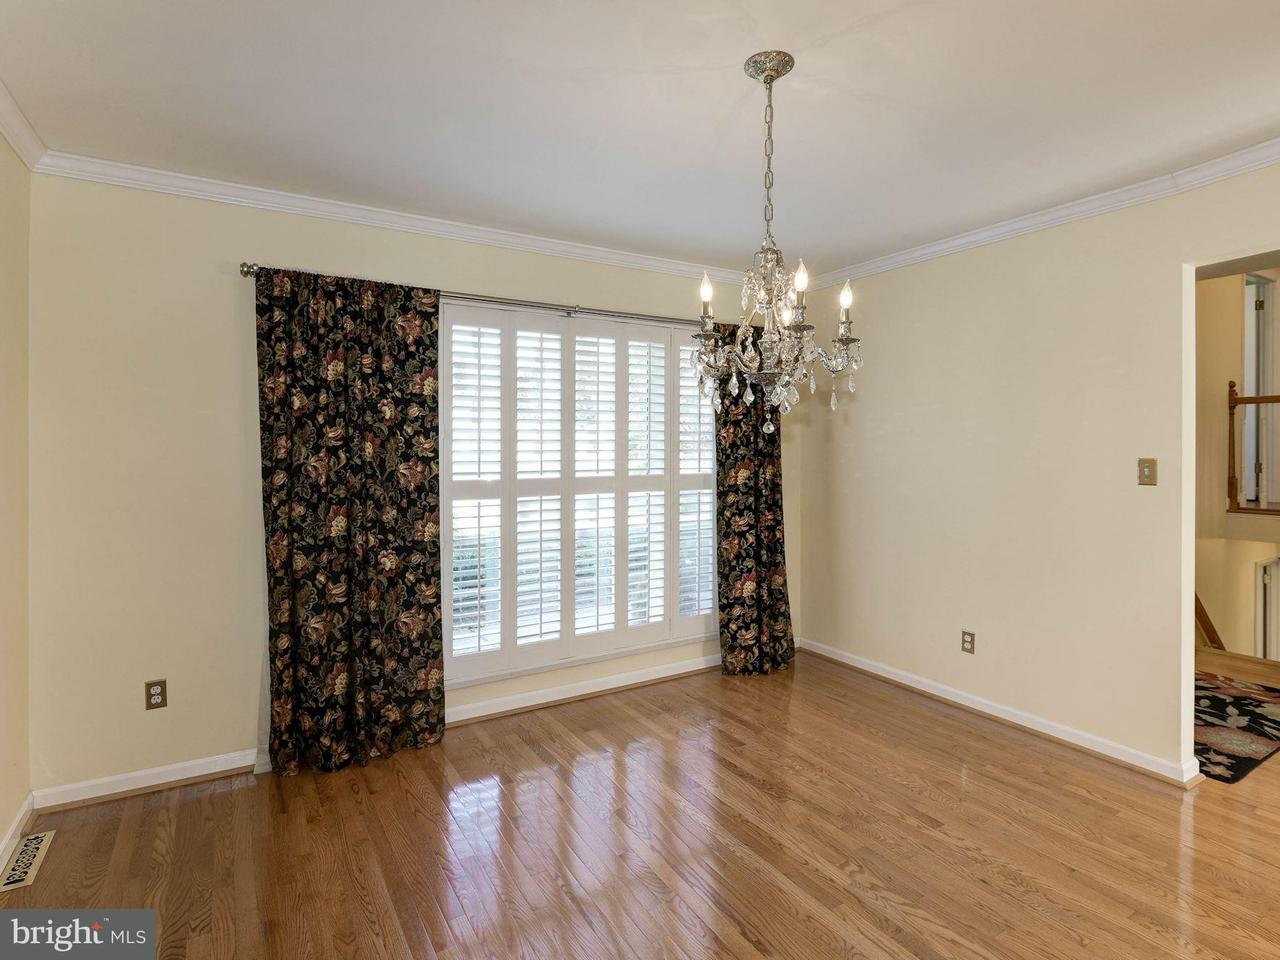 Additional photo for property listing at 10917 Woodhaven Drive 10917 Woodhaven Drive Fairfax, Виргиния 22030 Соединенные Штаты